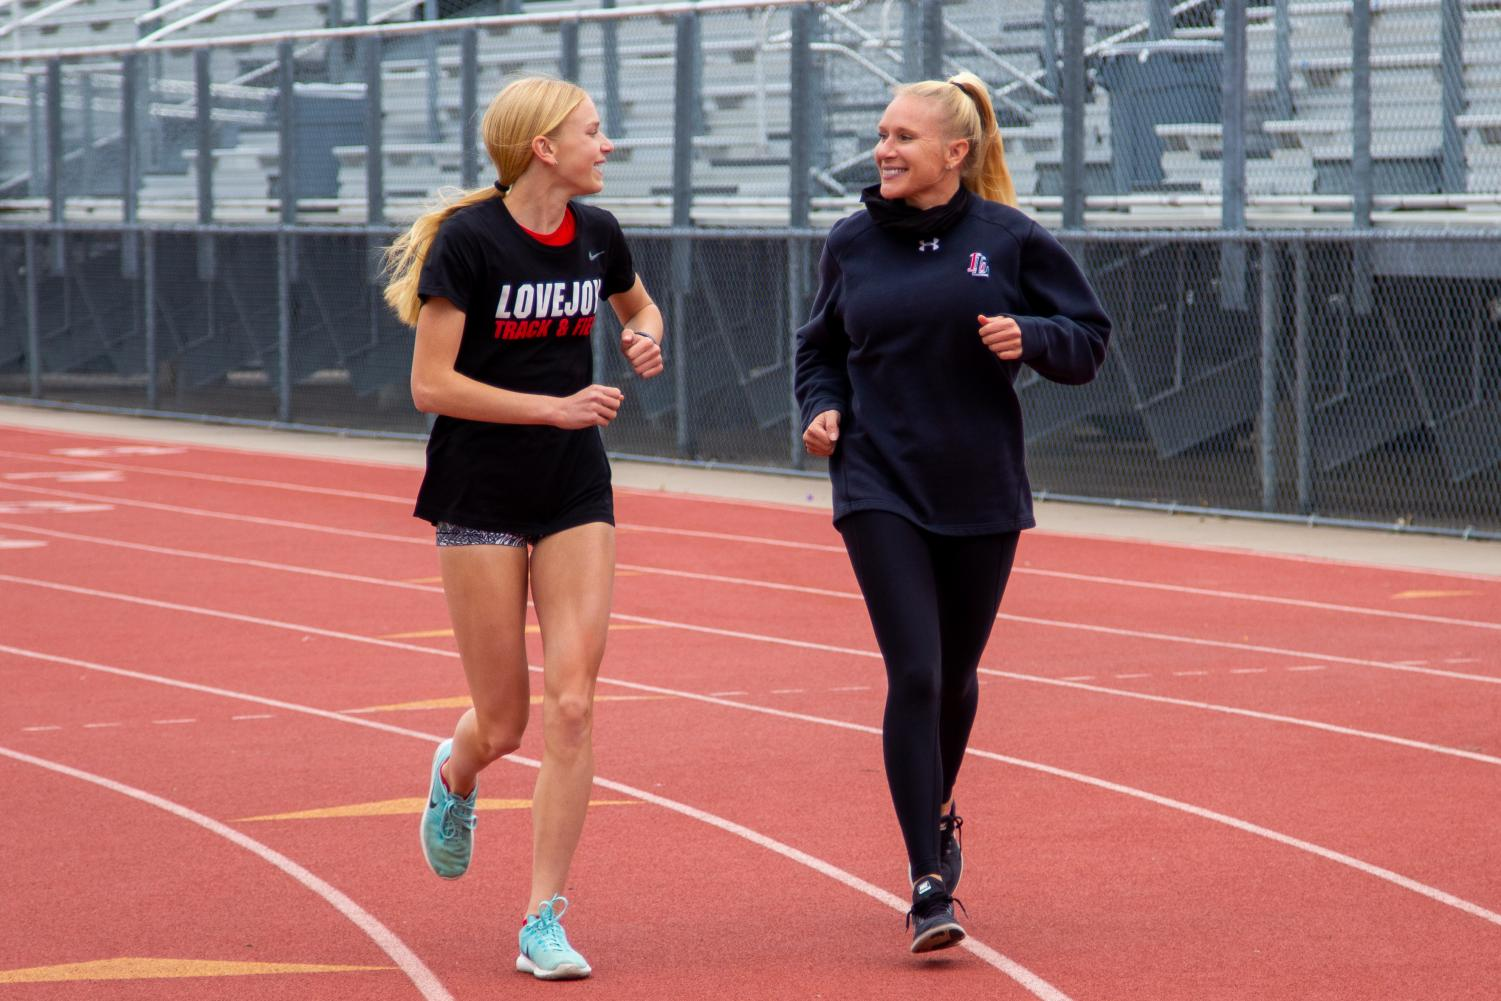 Girls track coach Carly Littlefield ran track in high school and college. Carly